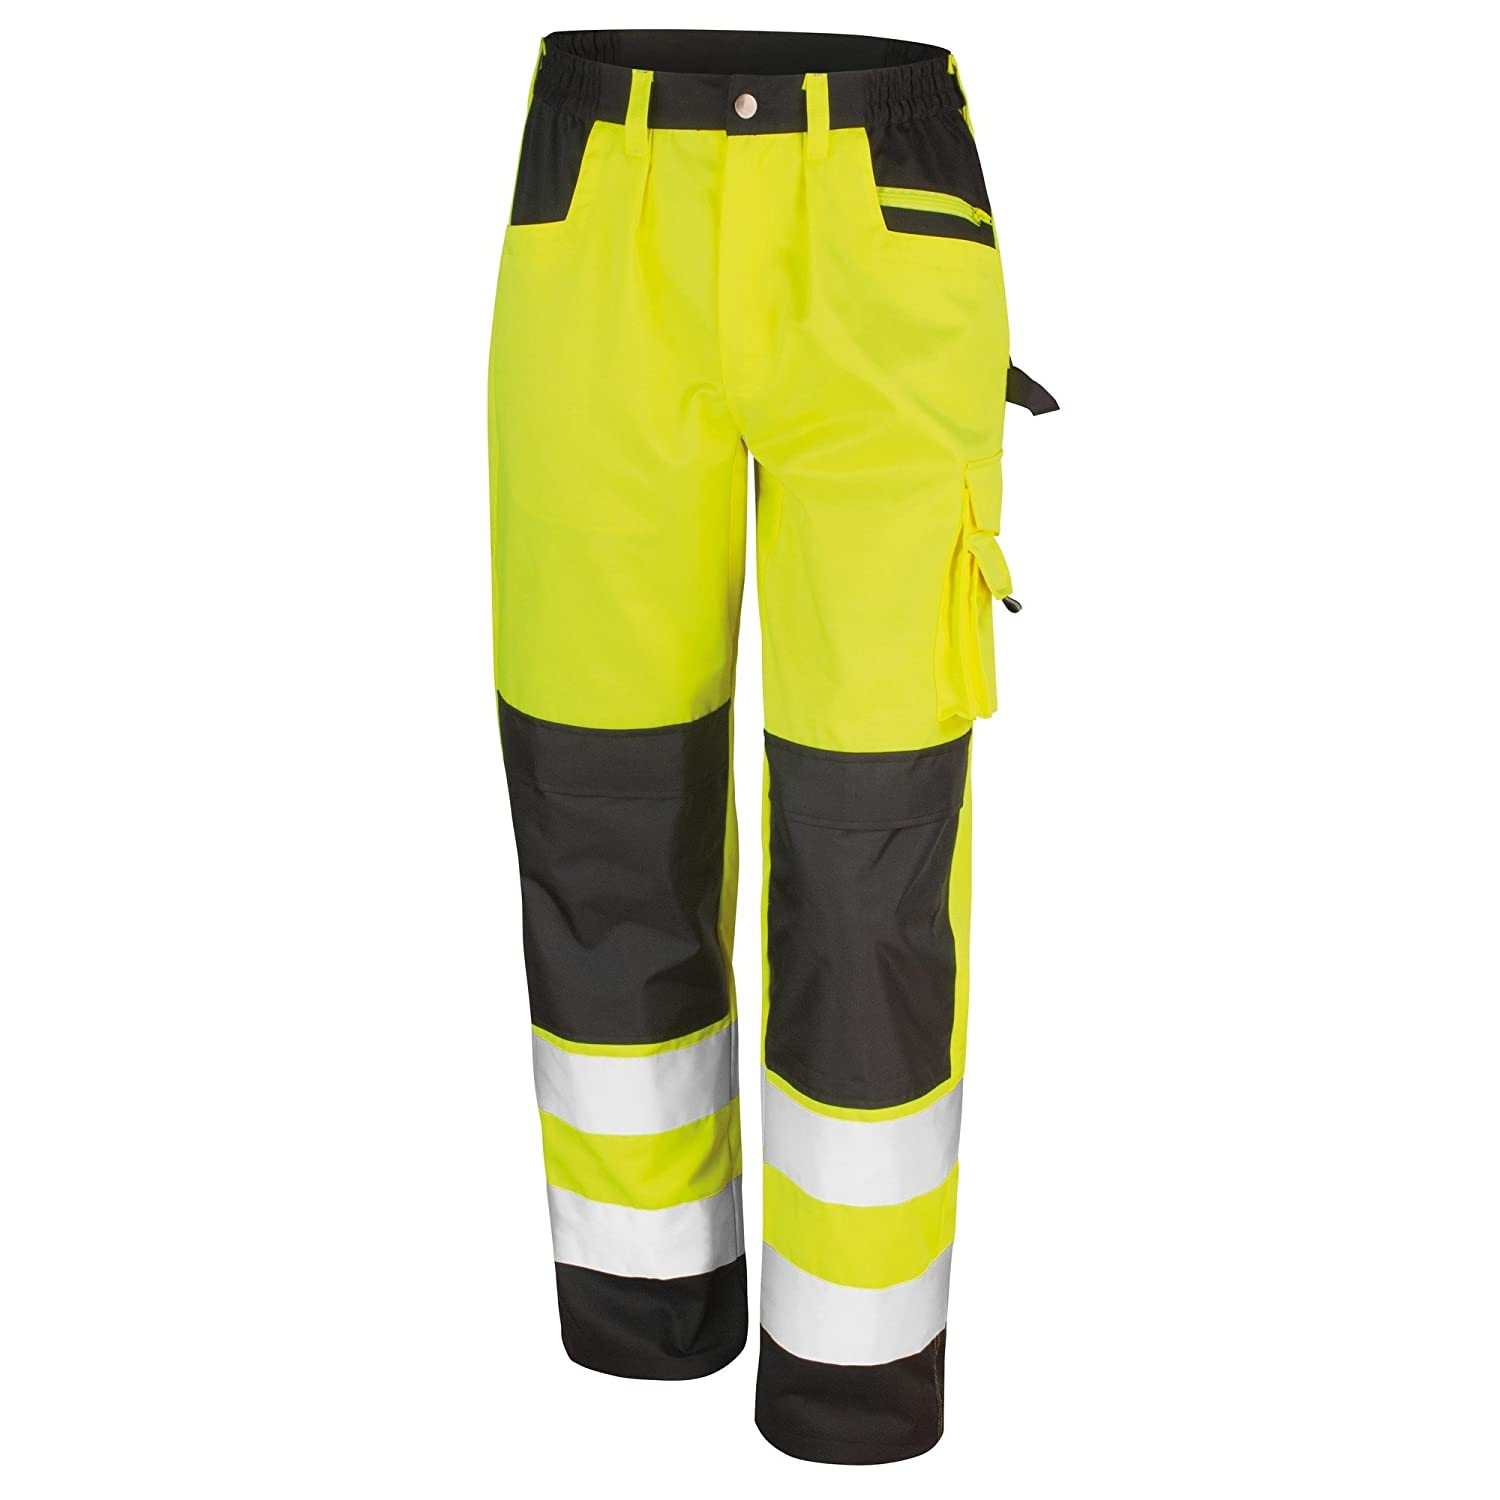 Result PANTS レディース メンズ イエロー(Hi-Vis Yellow) 5L  B072191YGV